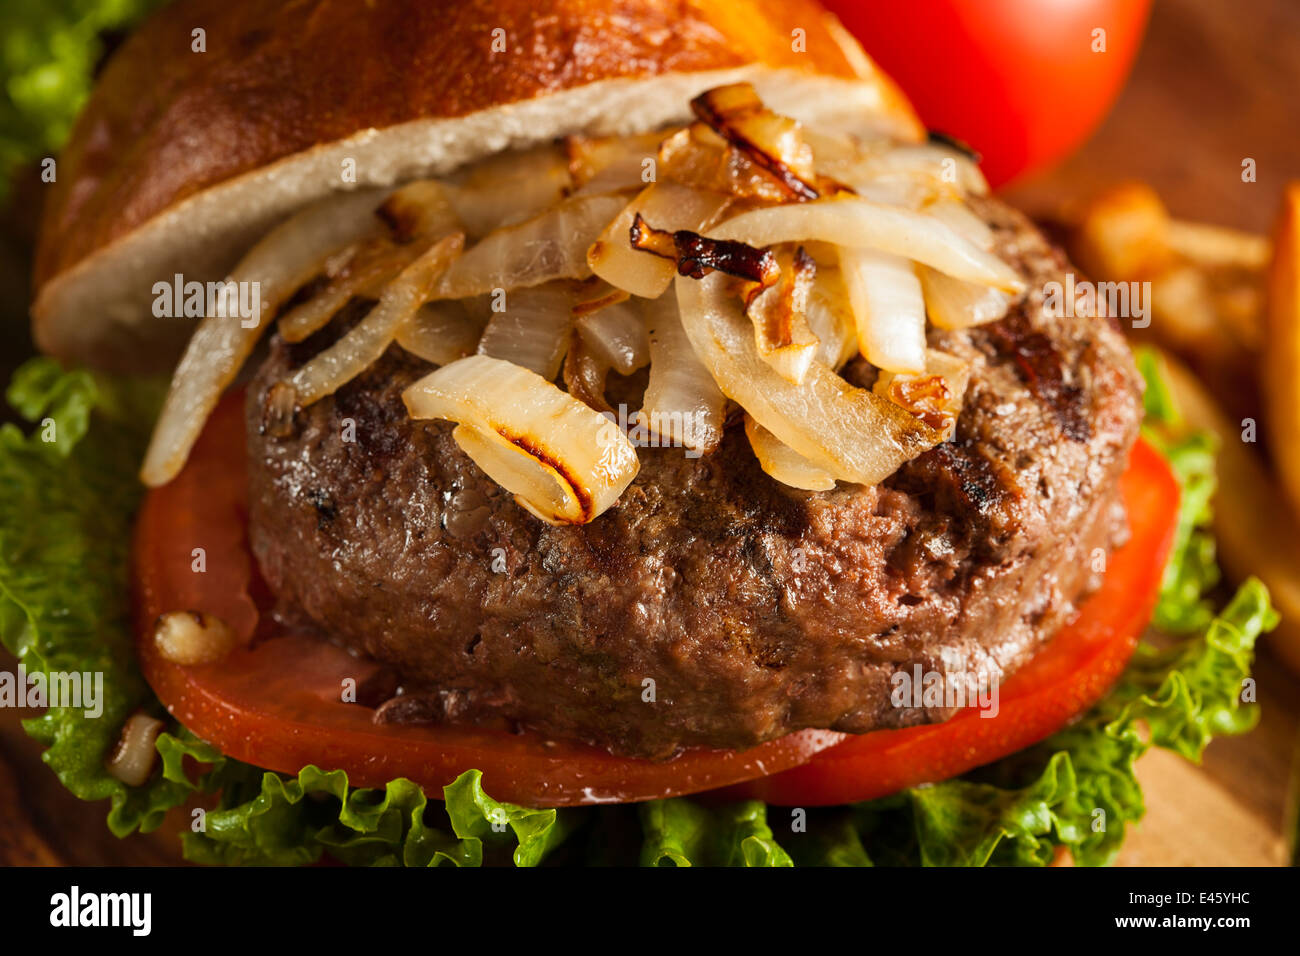 Gourmet Hamburger with Lettuce Tomato and Onions - Stock Image